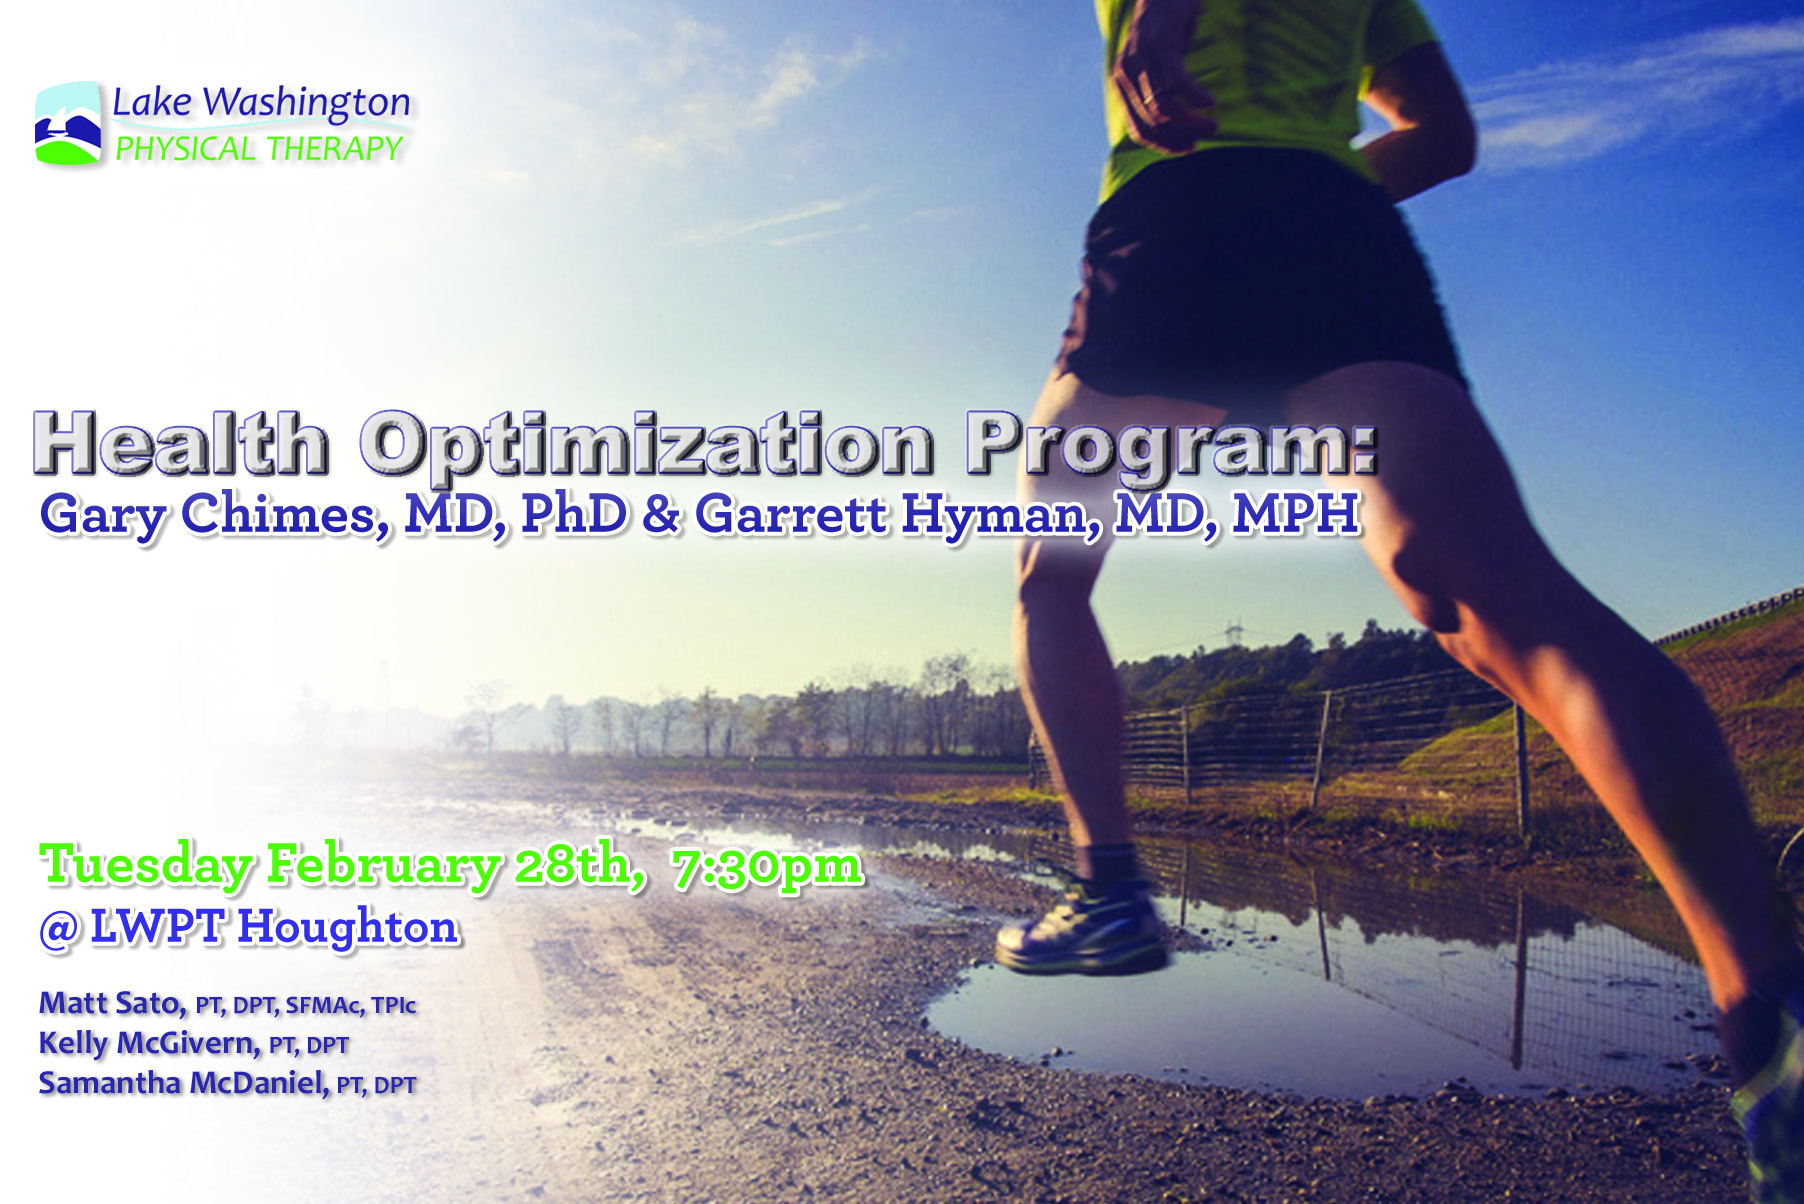 Dr. Gary Chimes, MD & Garret Hyman, MDHealth Optimization - More on Dr. Chimes & Dr. Hyman